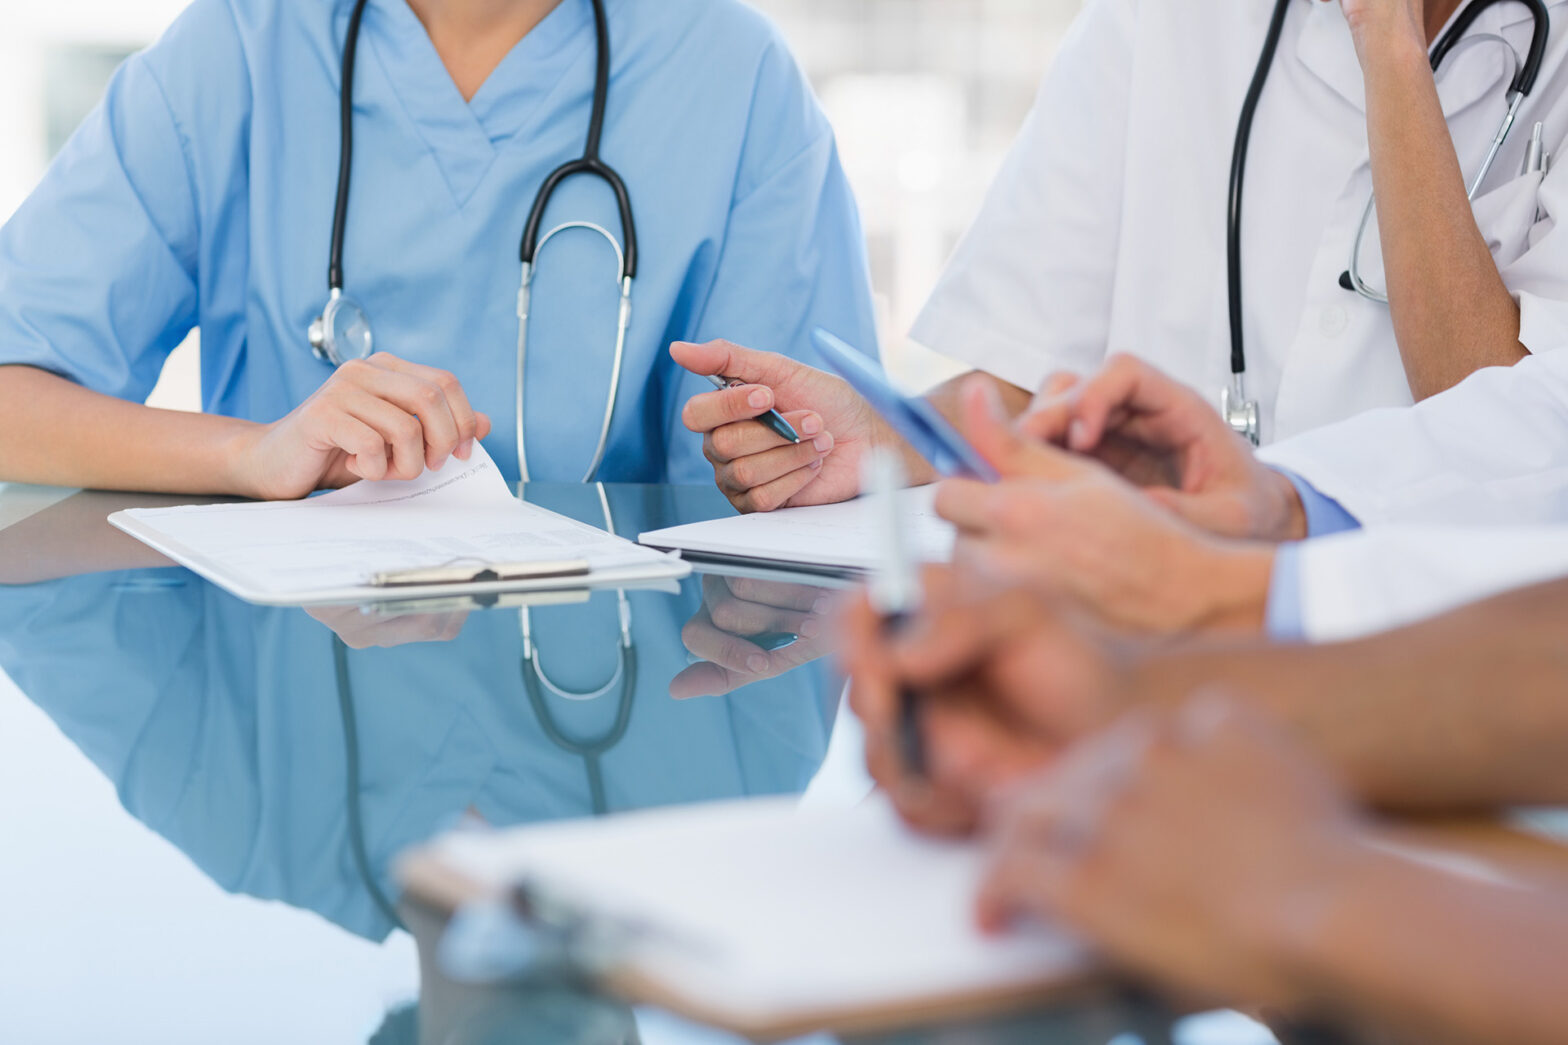 Doctors in a meeting at a hospital